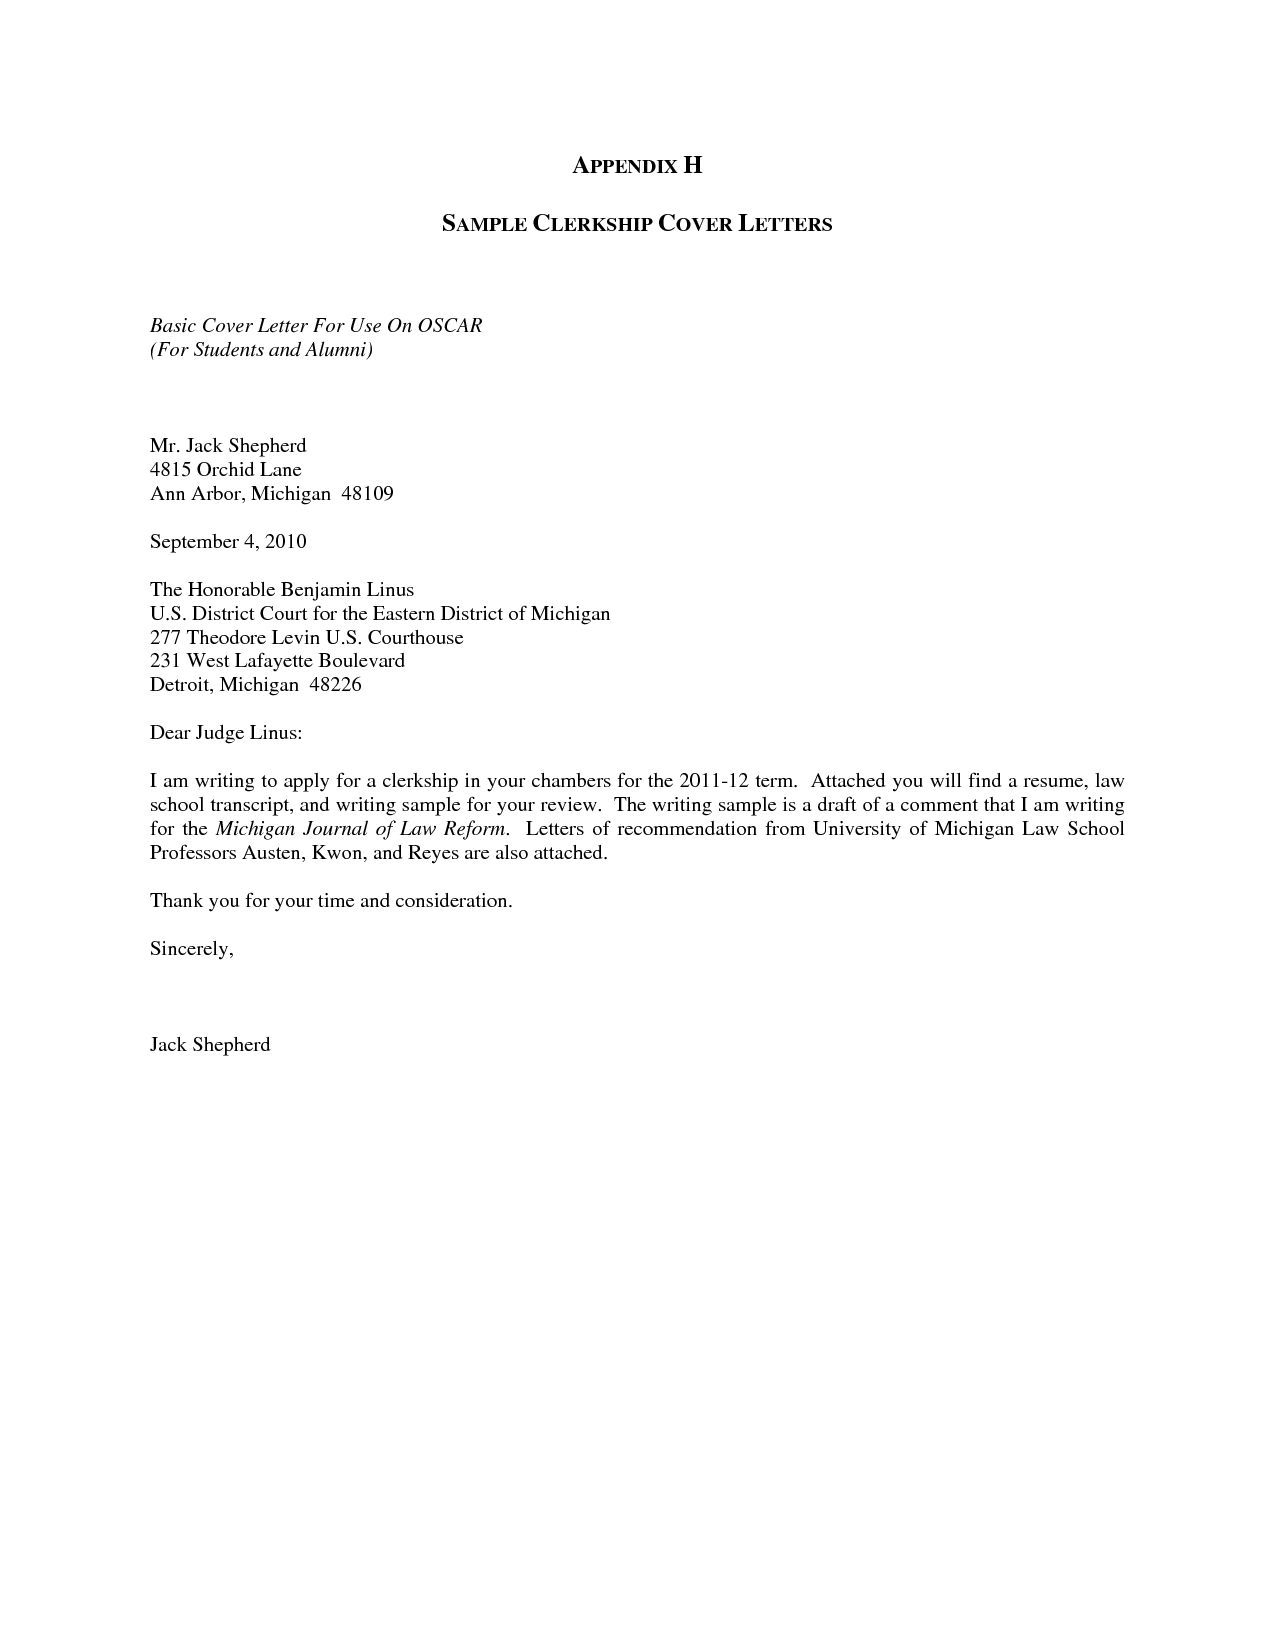 Certification Letter For Law School Basic Cover Sample Template